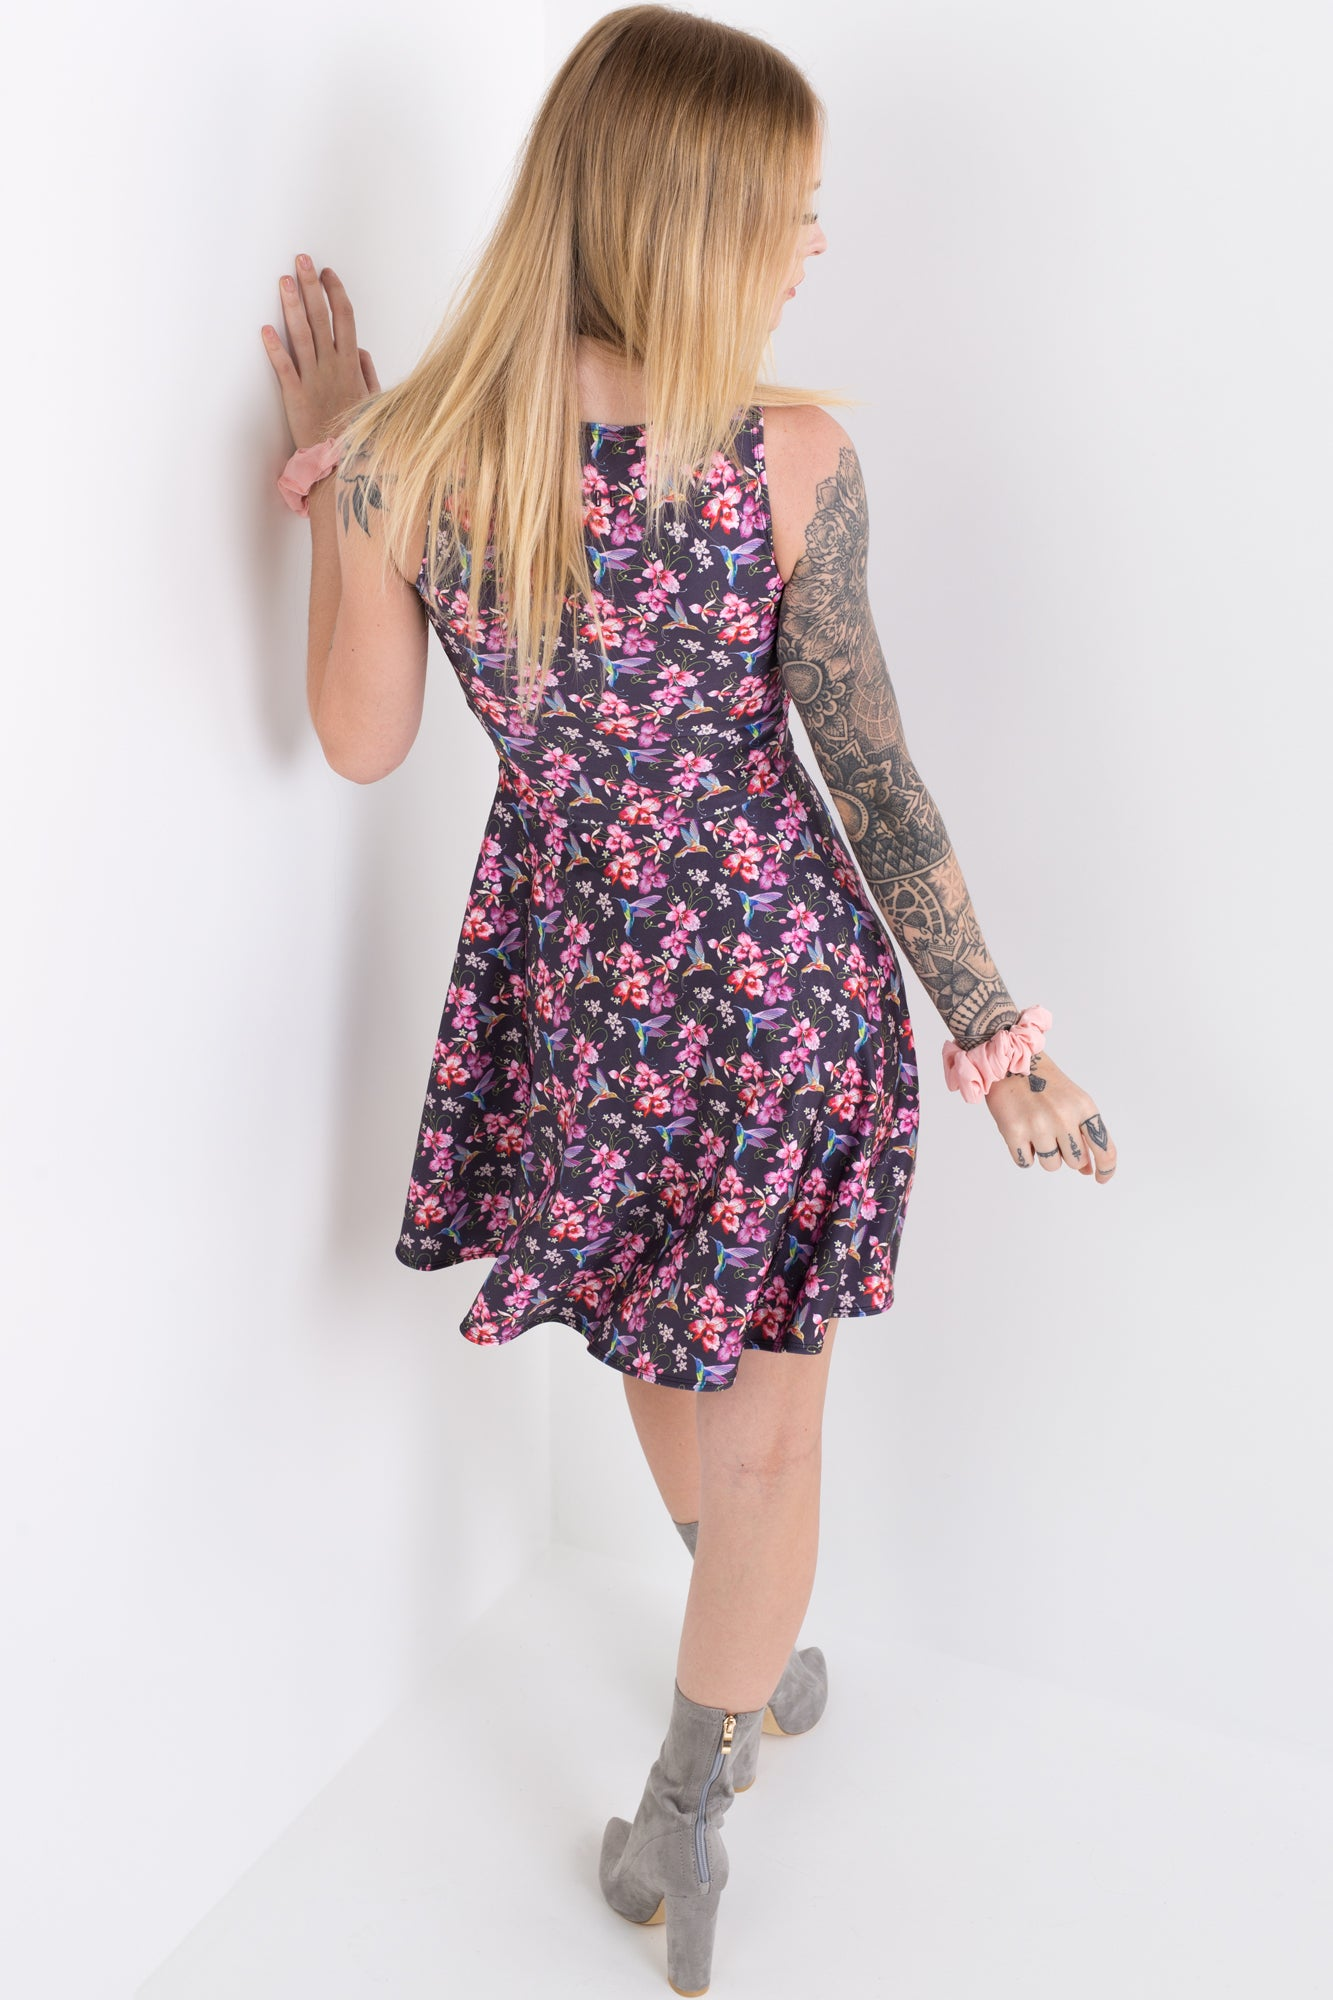 Stitched Floral And Bird Vogue Dress